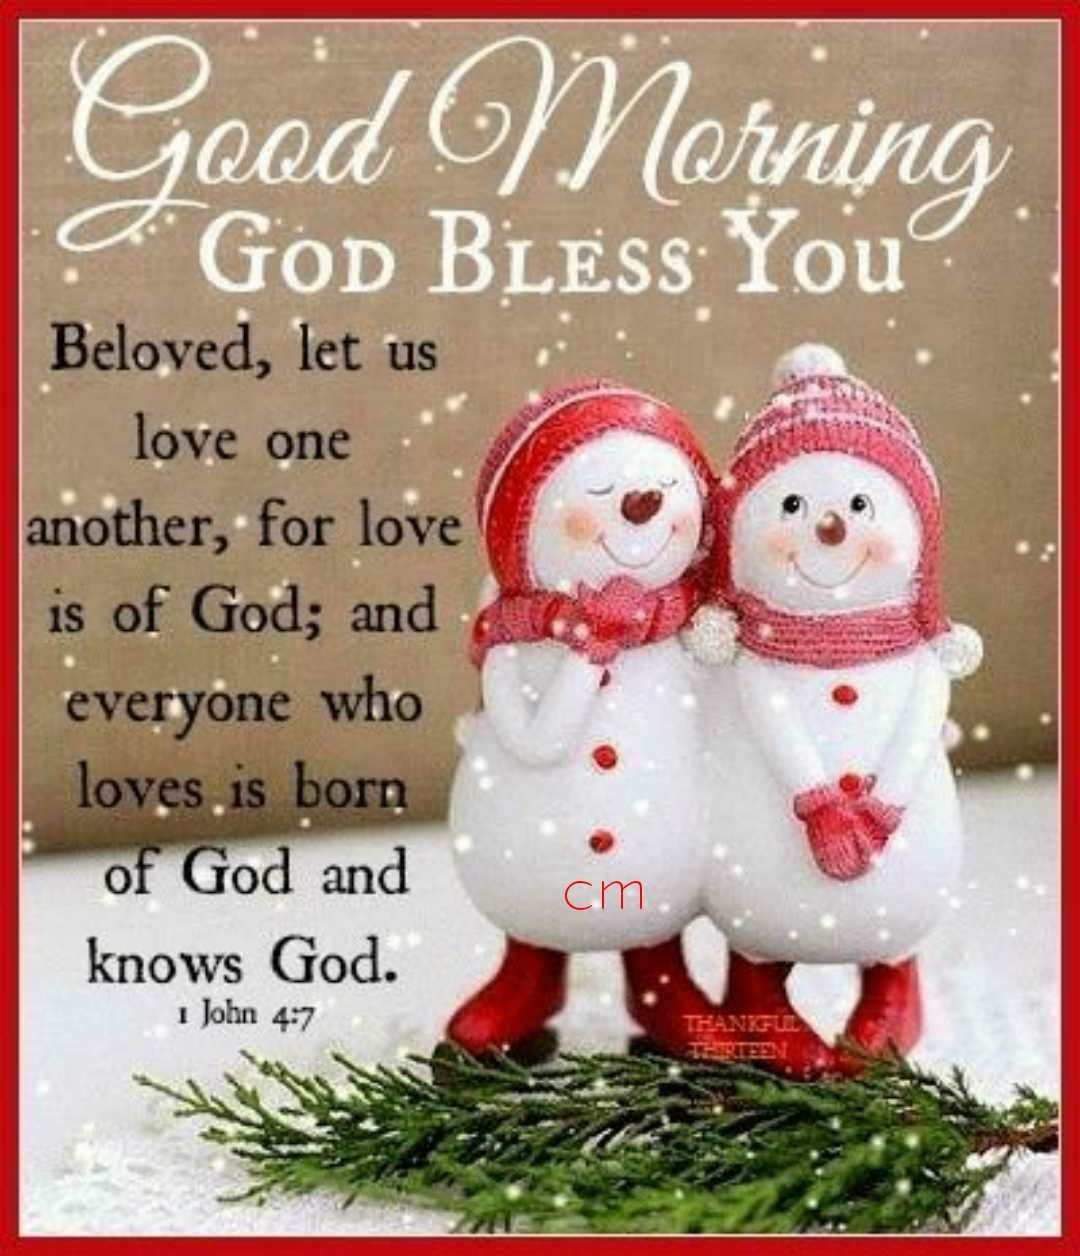 Morning Quotes For Loved Ones The Fruits Of The Spirit  Truth  Pinterest  Blessings Verses